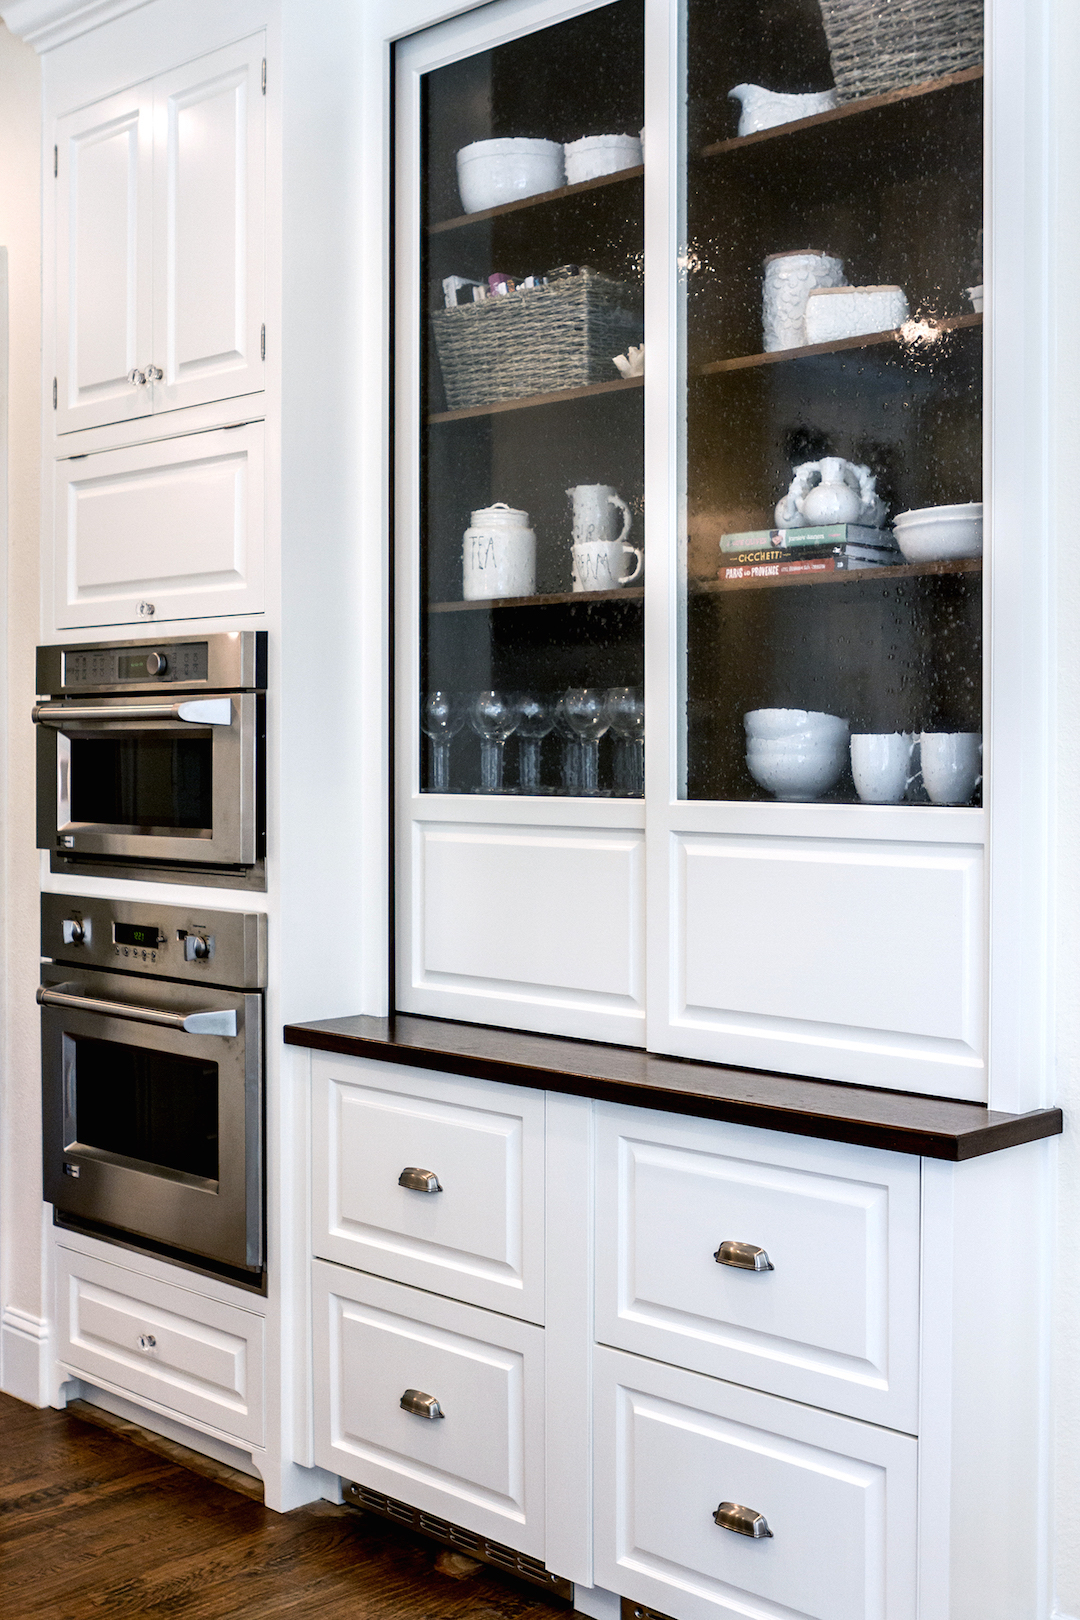 Decor inspiration a go to kitchen the simply luxurious for Decorating cabinets with glass doors